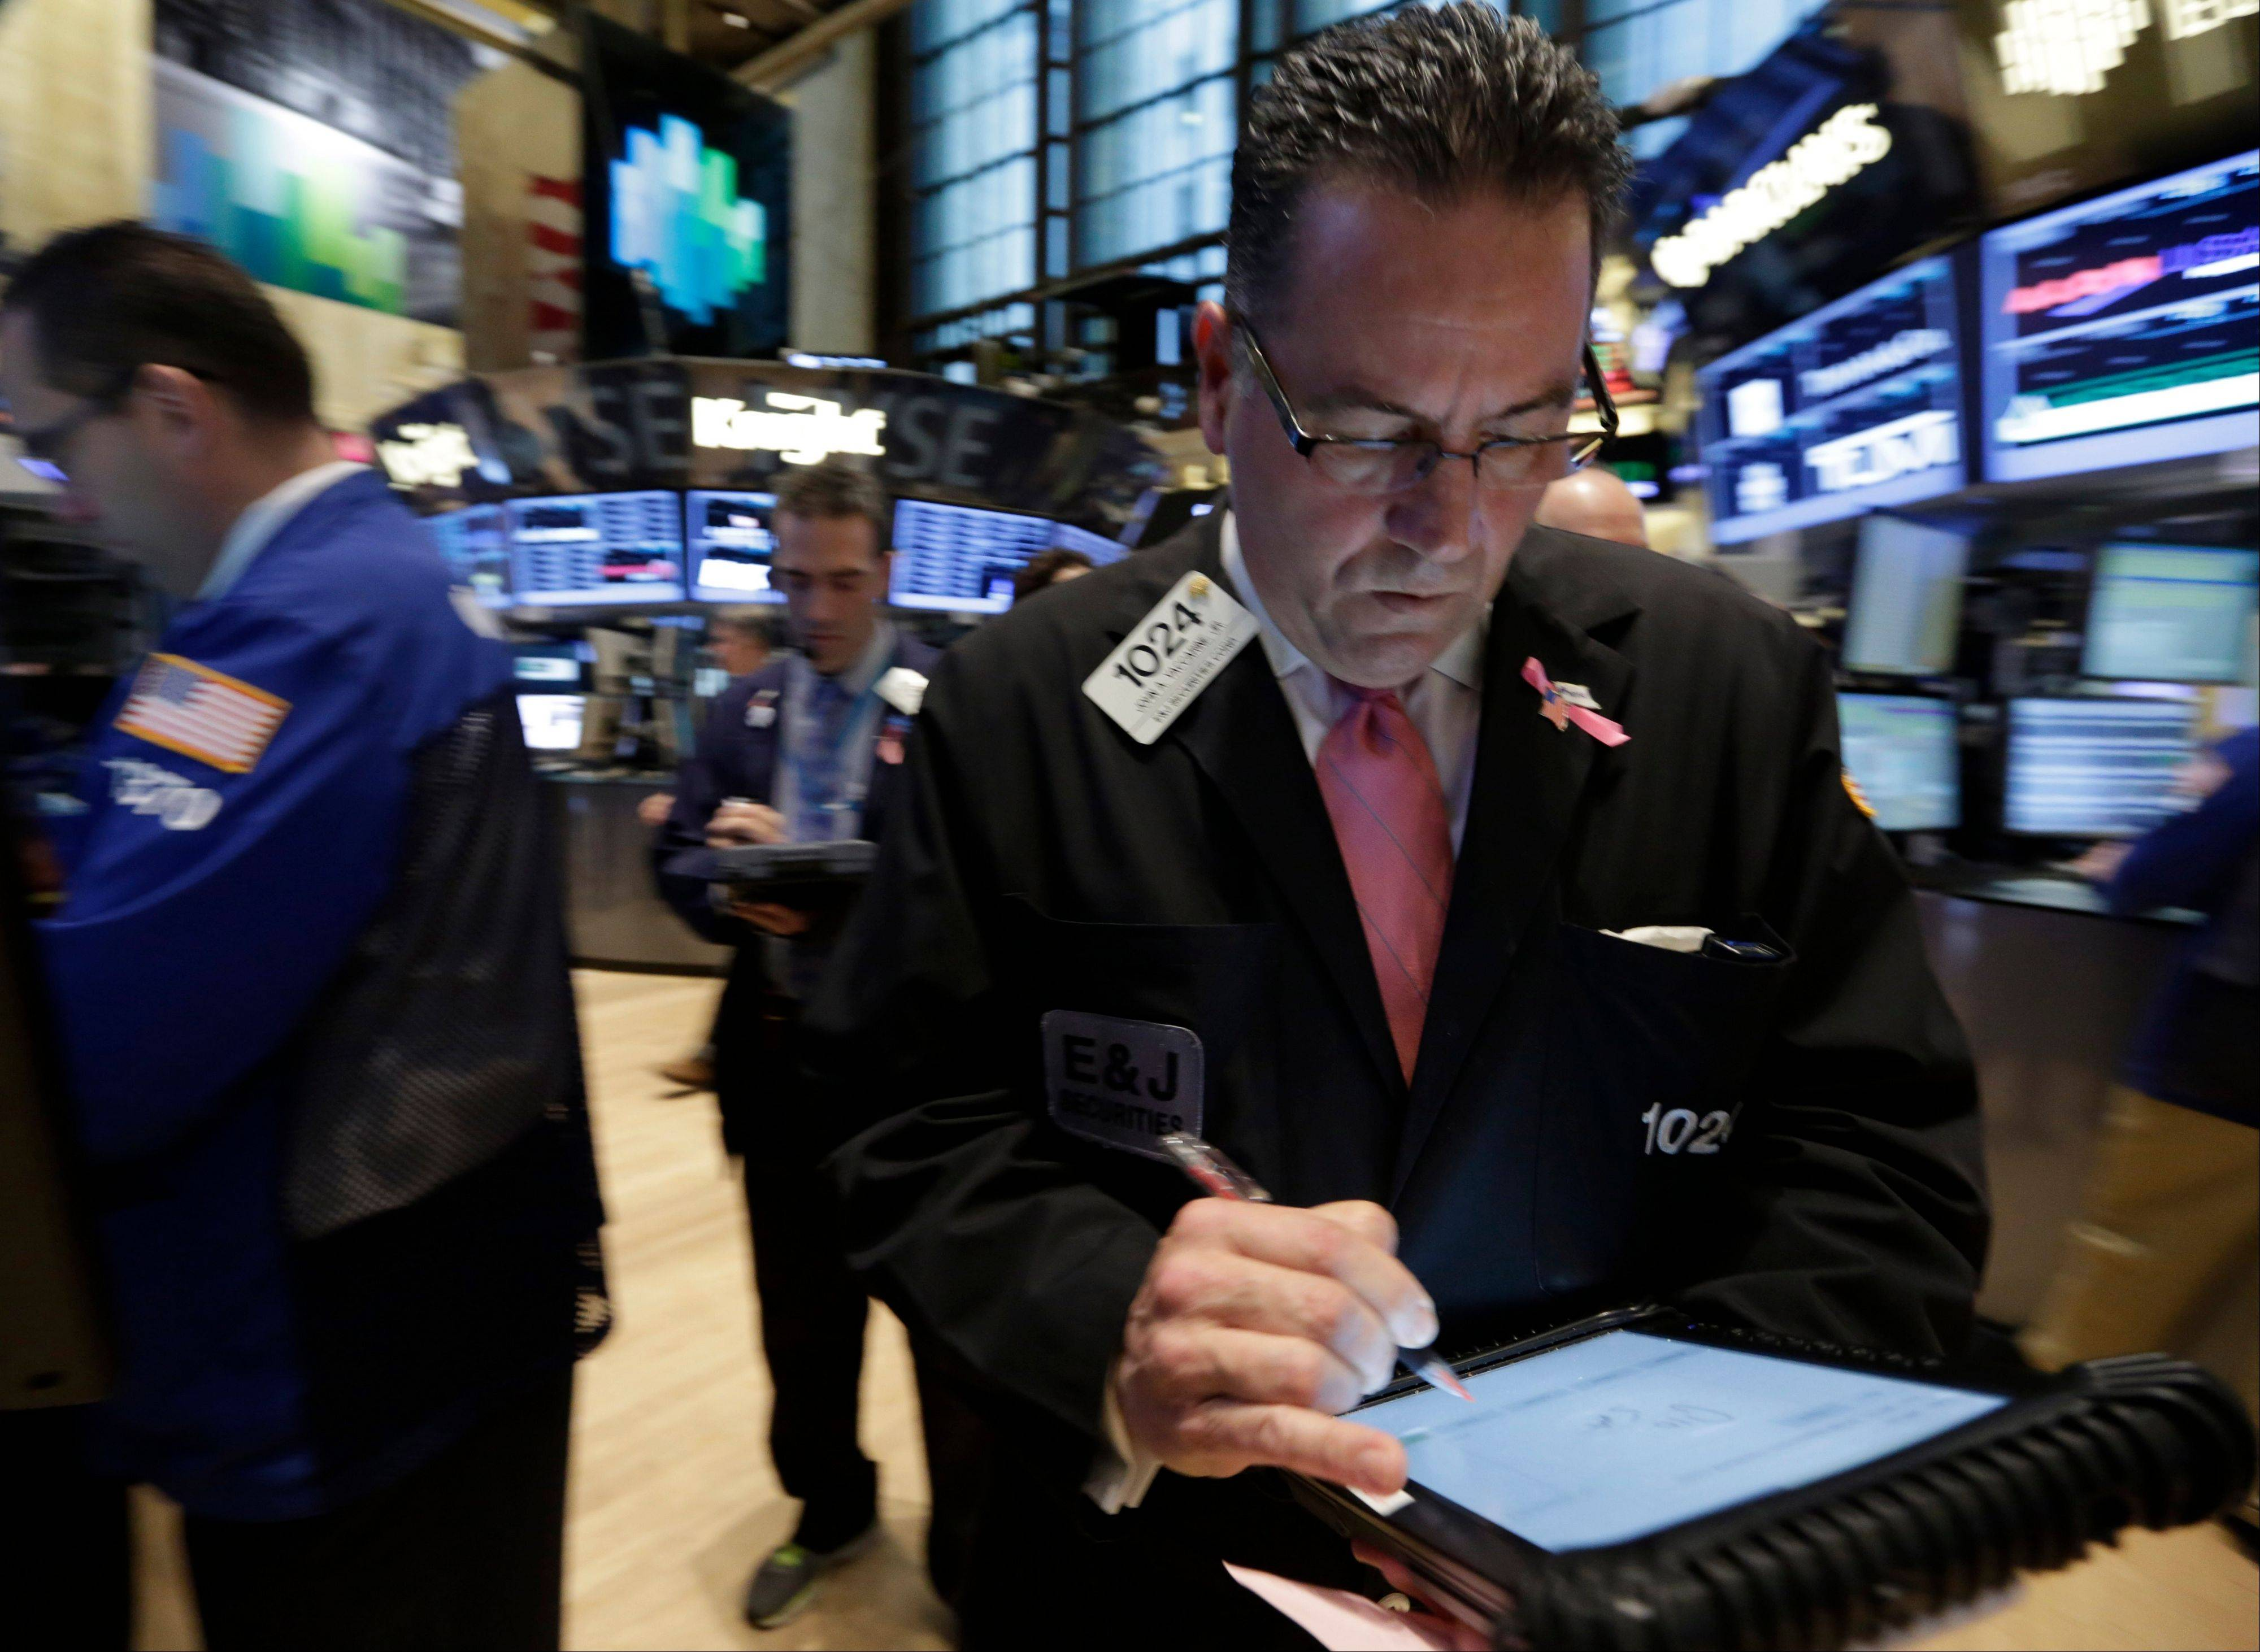 U.S. stocks rose, giving the Standard & Poor's 500 Index its first back-to-back gain in more than three weeks, on optimism over earnings and as commodities gained amid a report showing China's inflation slowed.